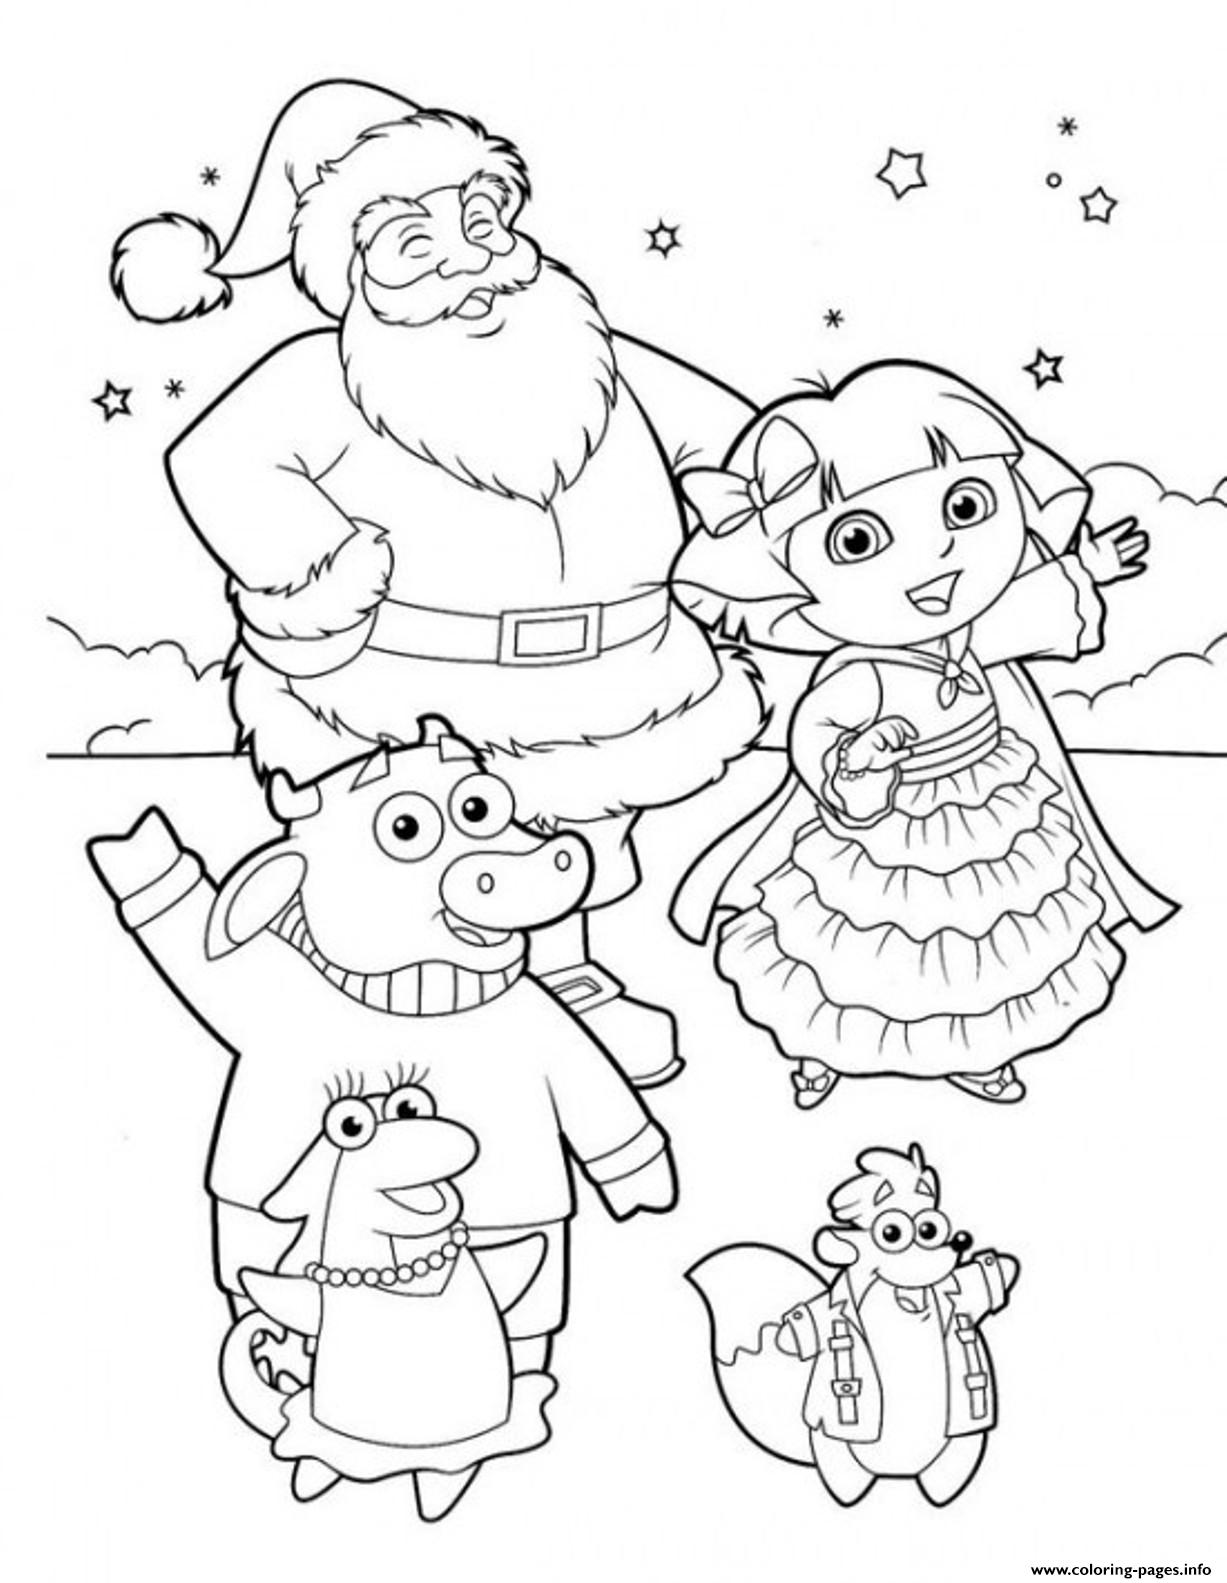 dora coloring pages online free dora the explorer s for kids for christmas freef472 free pages dora coloring online